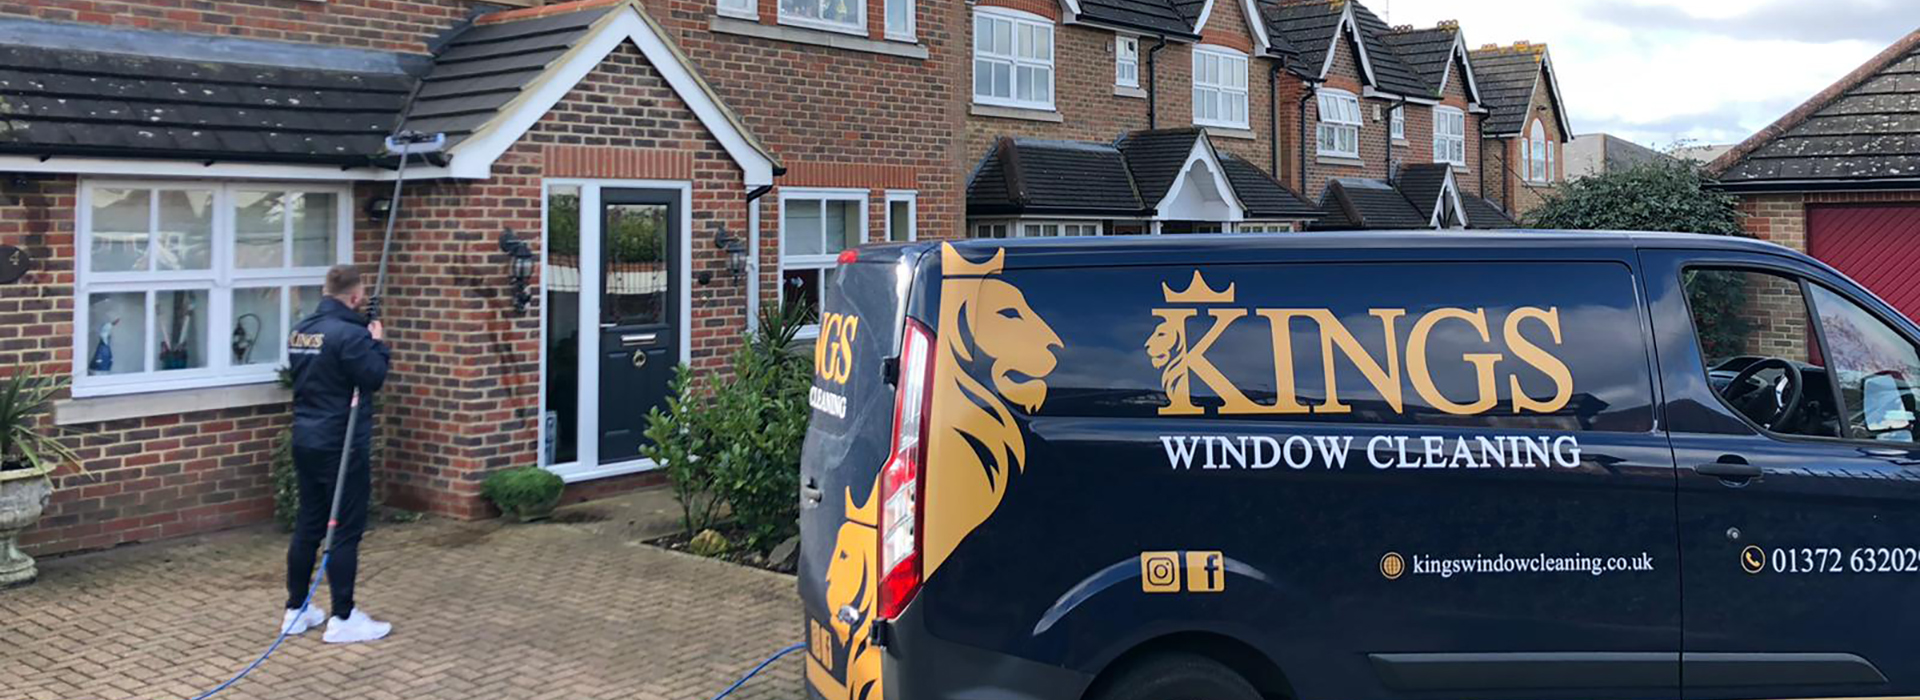 window cleaning company in surrey